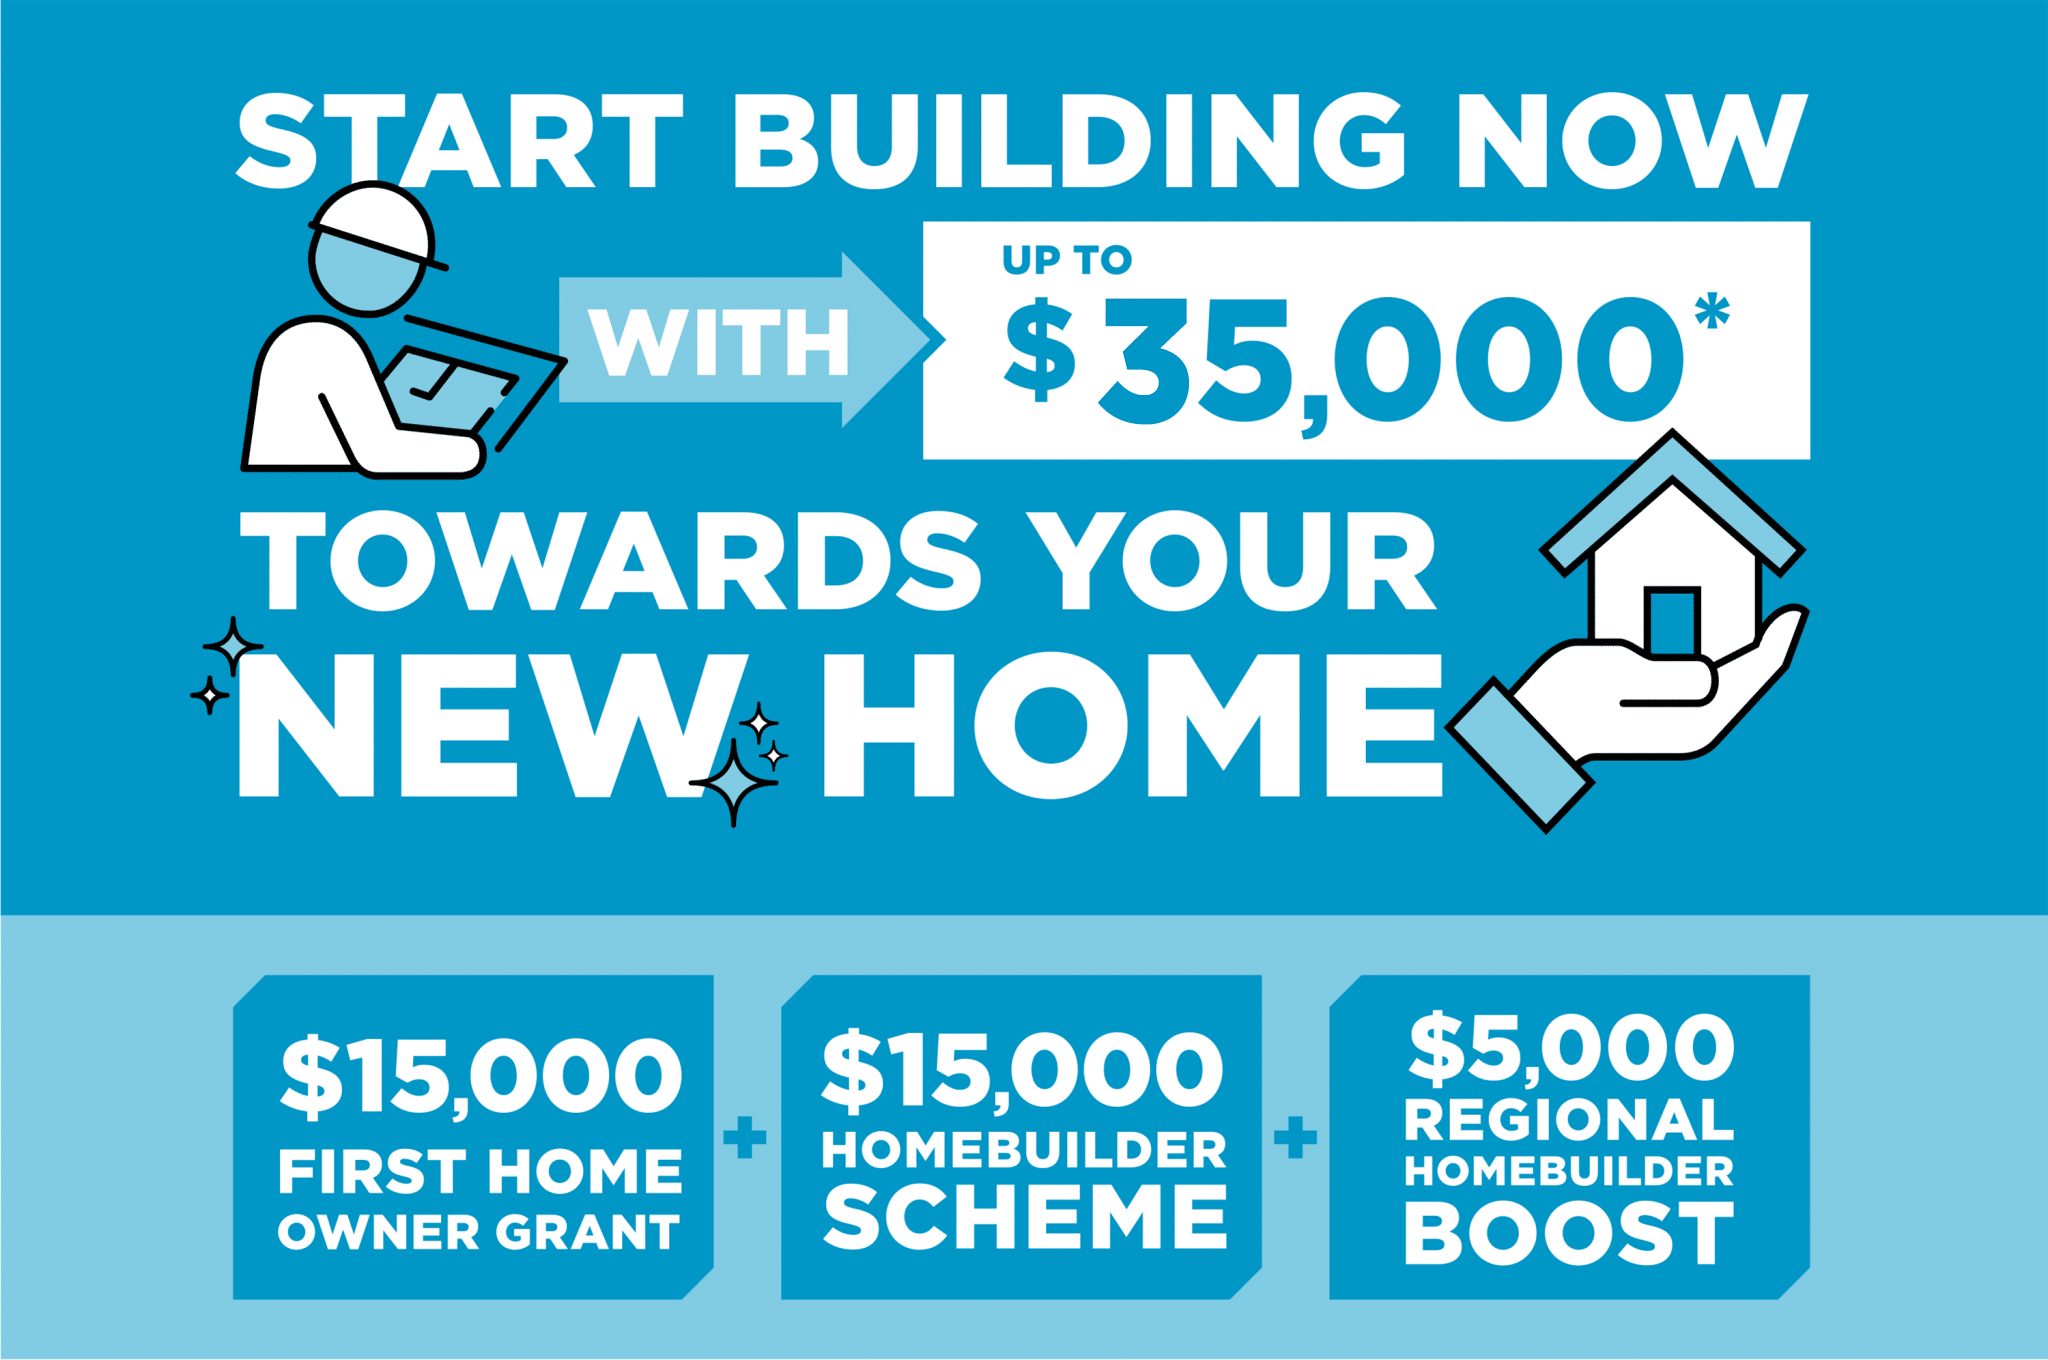 Start building no with up to $35,000* towards your new home. $15,000 first home owner grant. $15,000 HomeBuilder Scheme. $5,000 Regional HomeBuilder Boose.